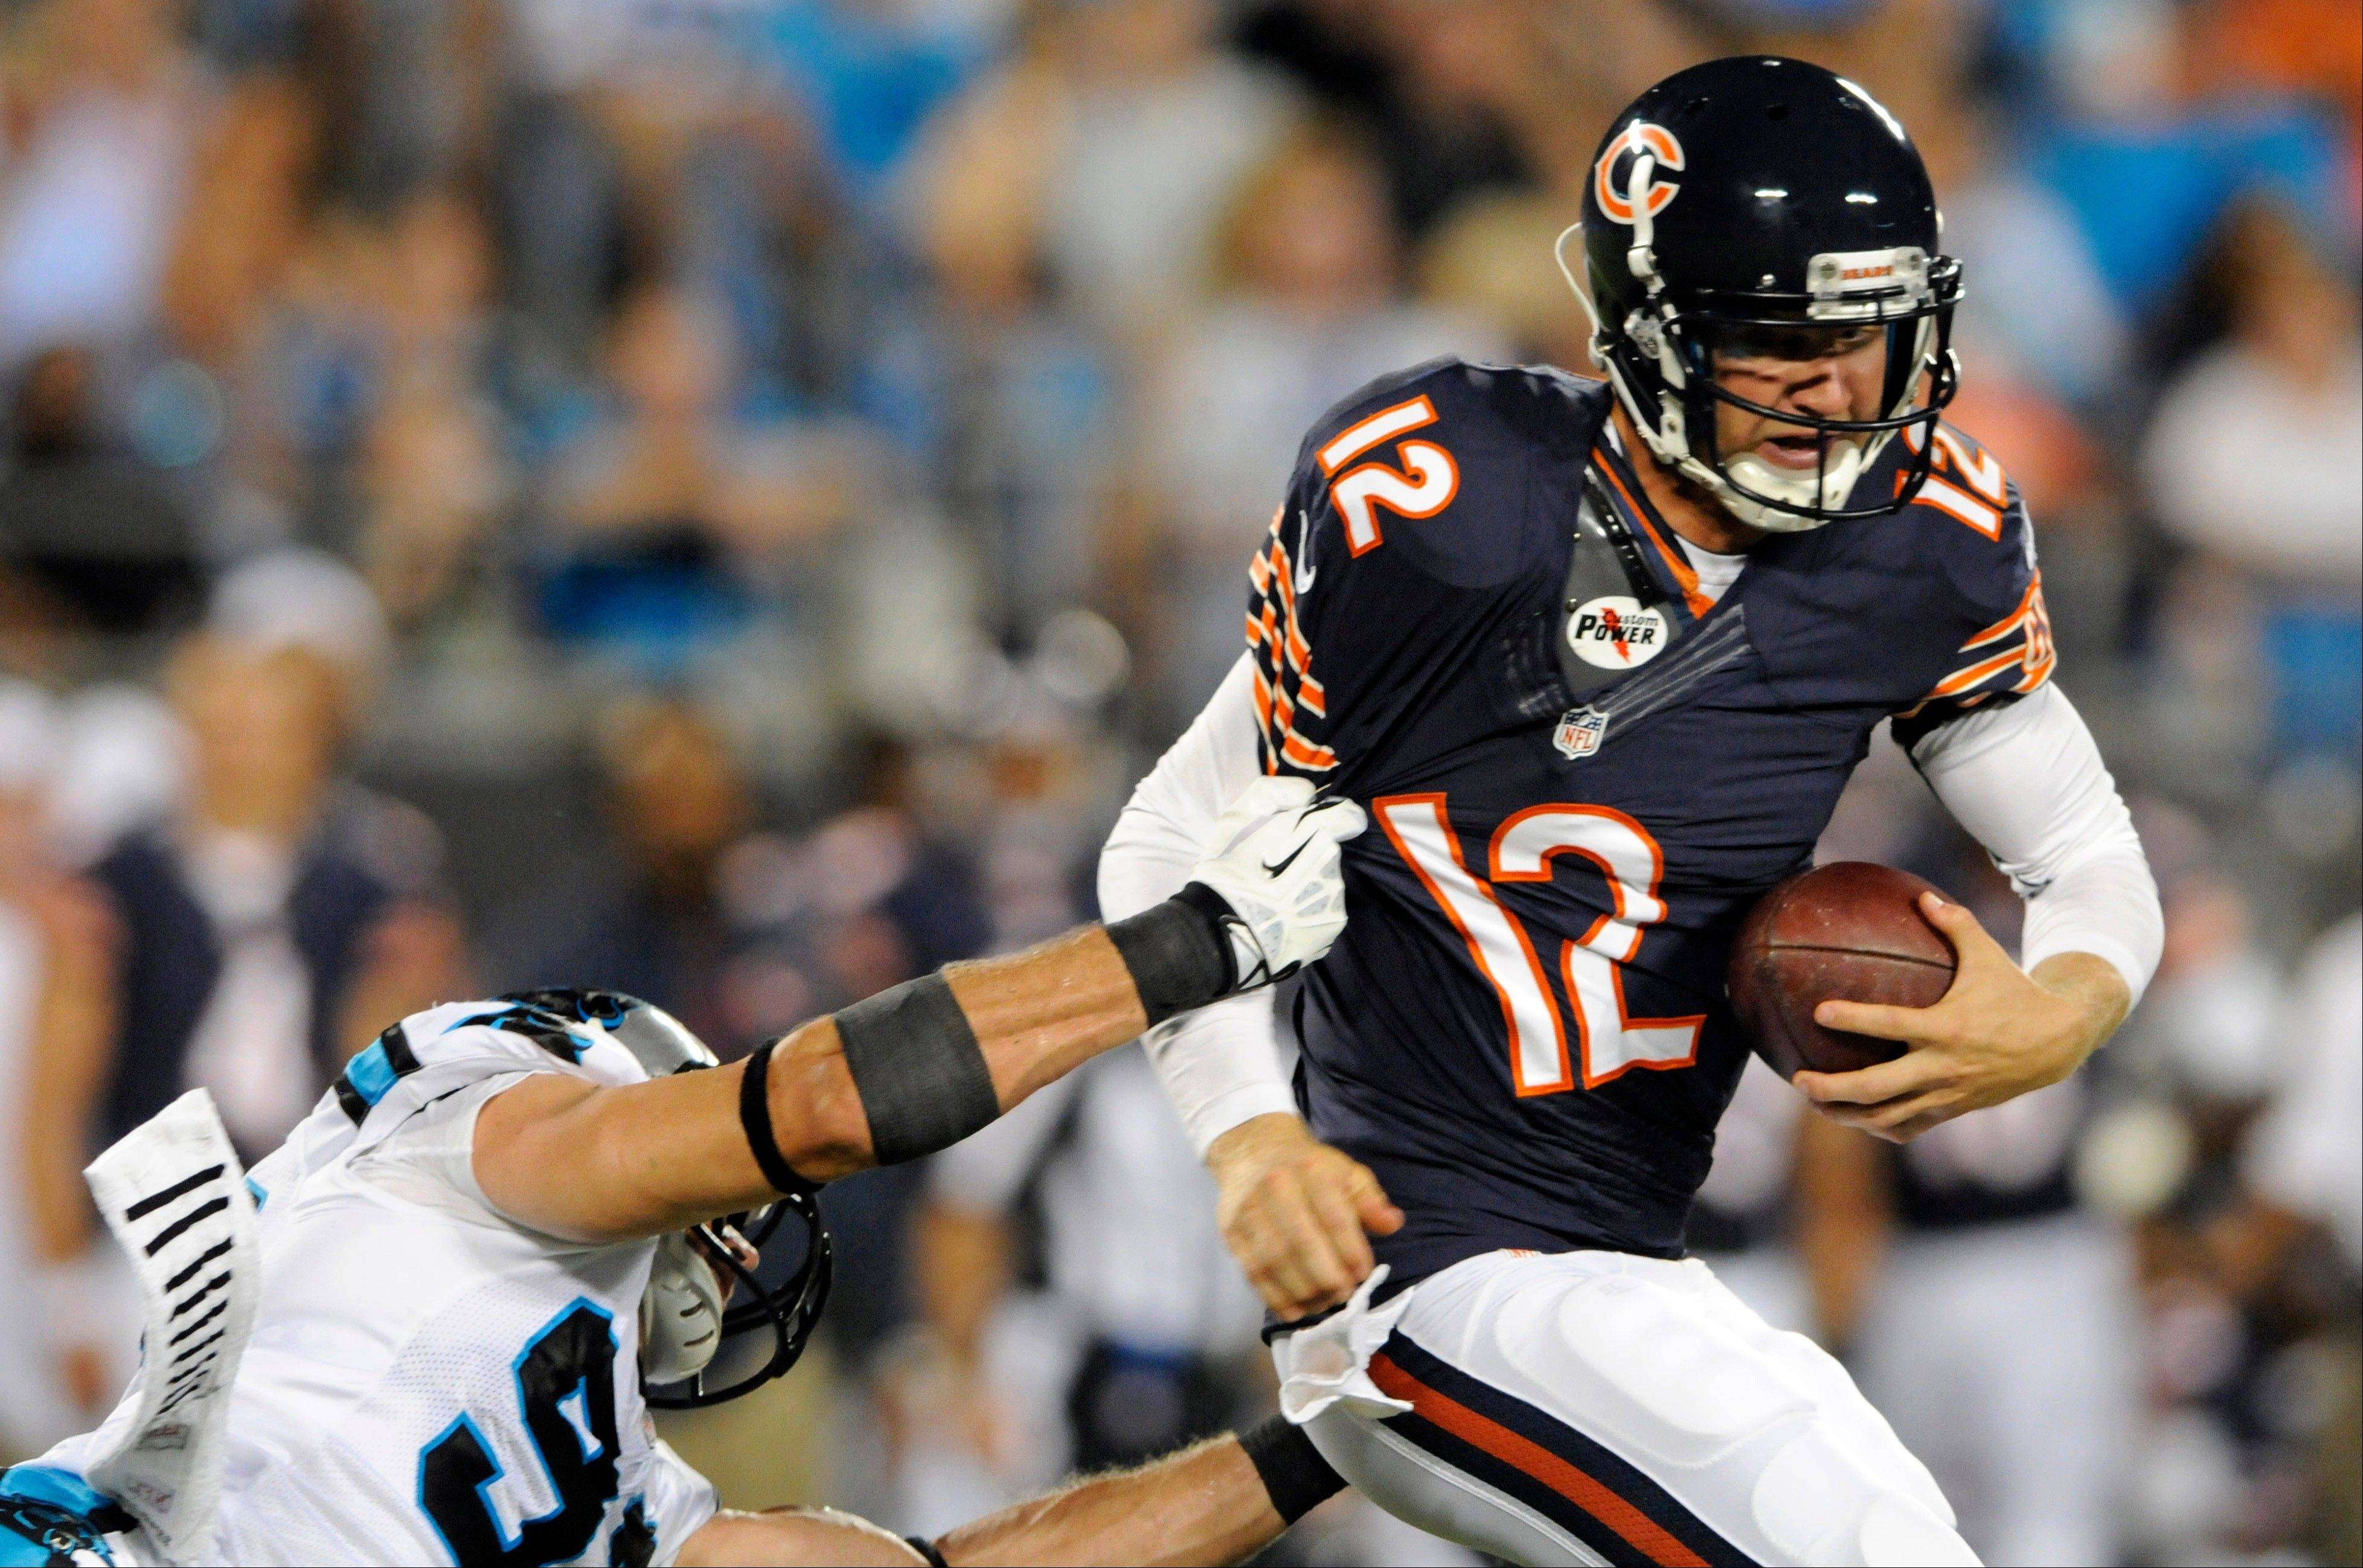 Bears quarterback Josh McCown is sacked by the Panthers' Colin Cole in the first half Friday night at Carolina.